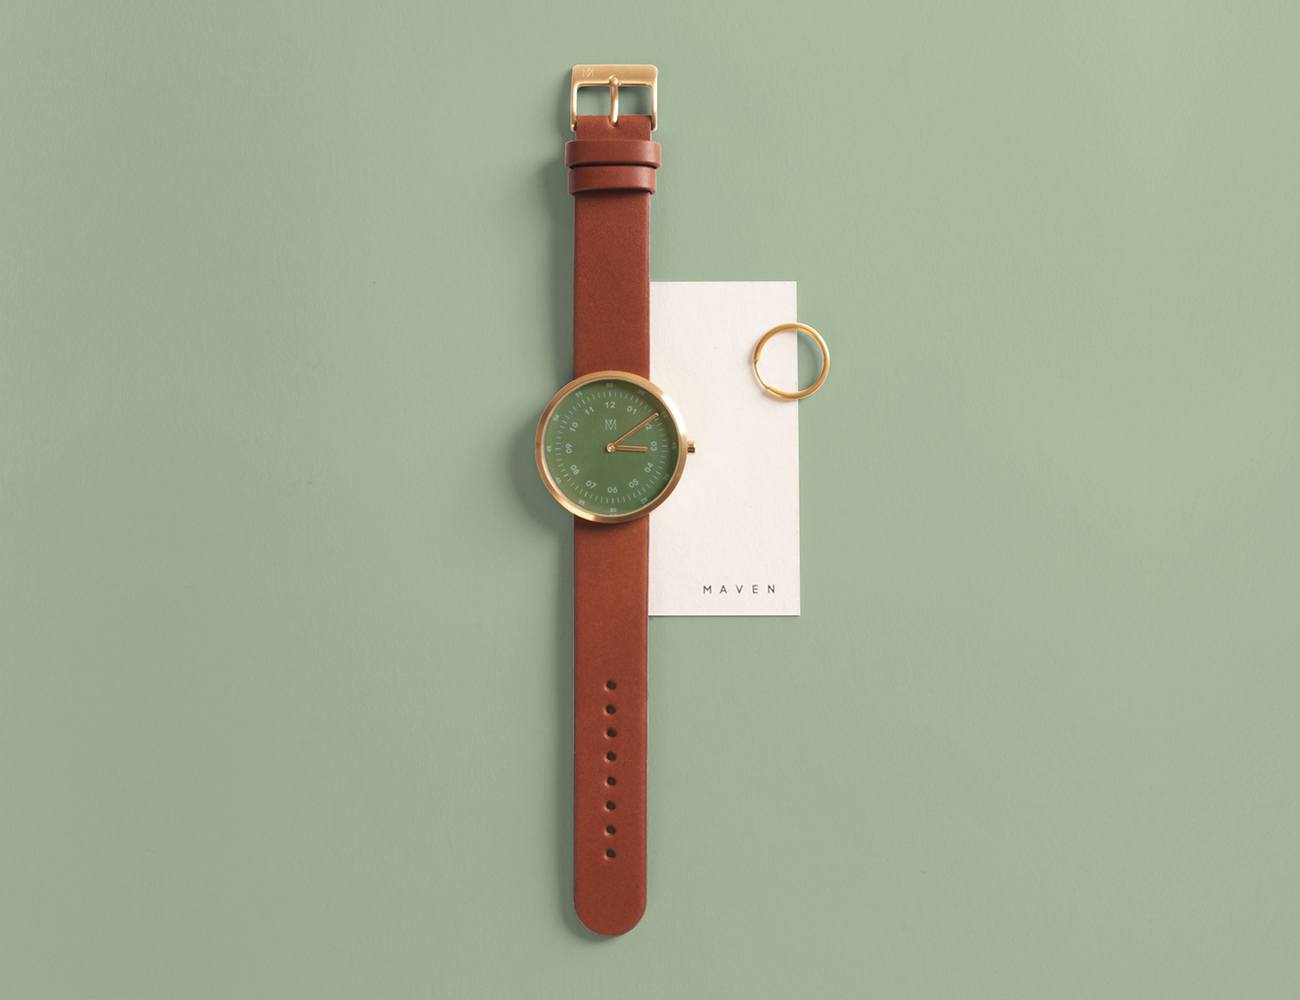 Maven Urban Nature Watches